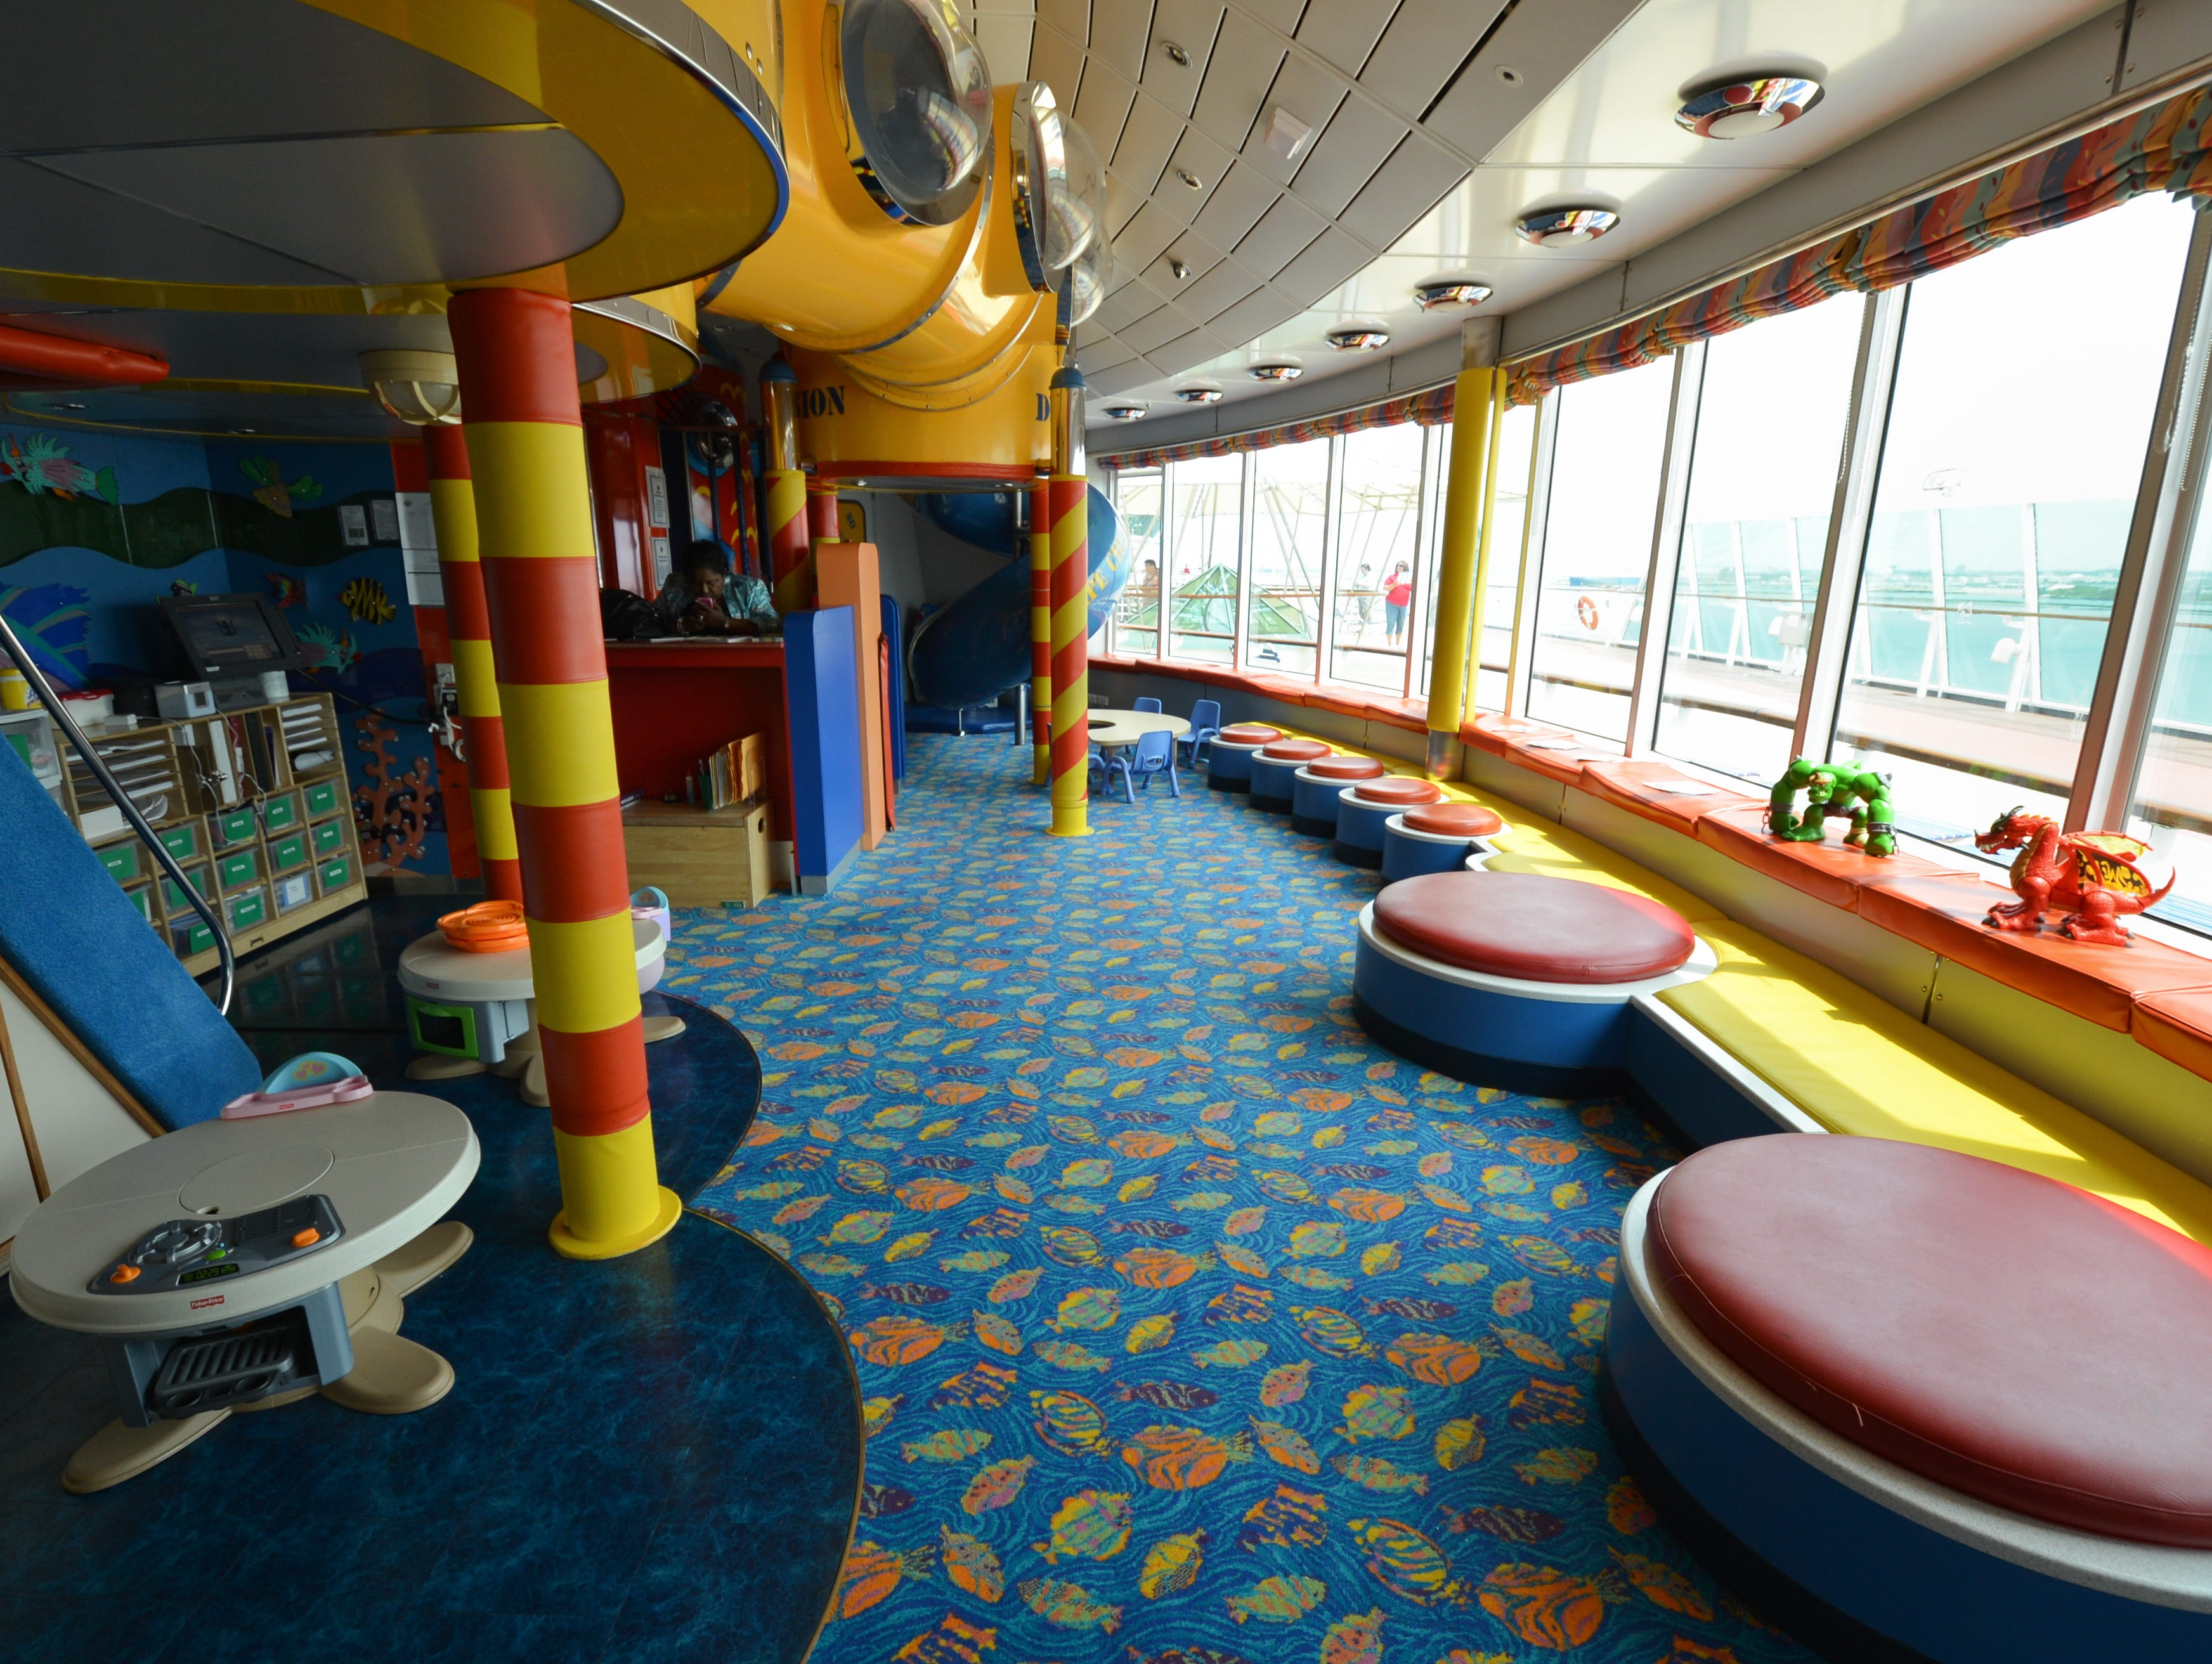 With a capacity of up to 80 children, Adventure Ocean includes areas for climbing geared to smaller children and craft tables.